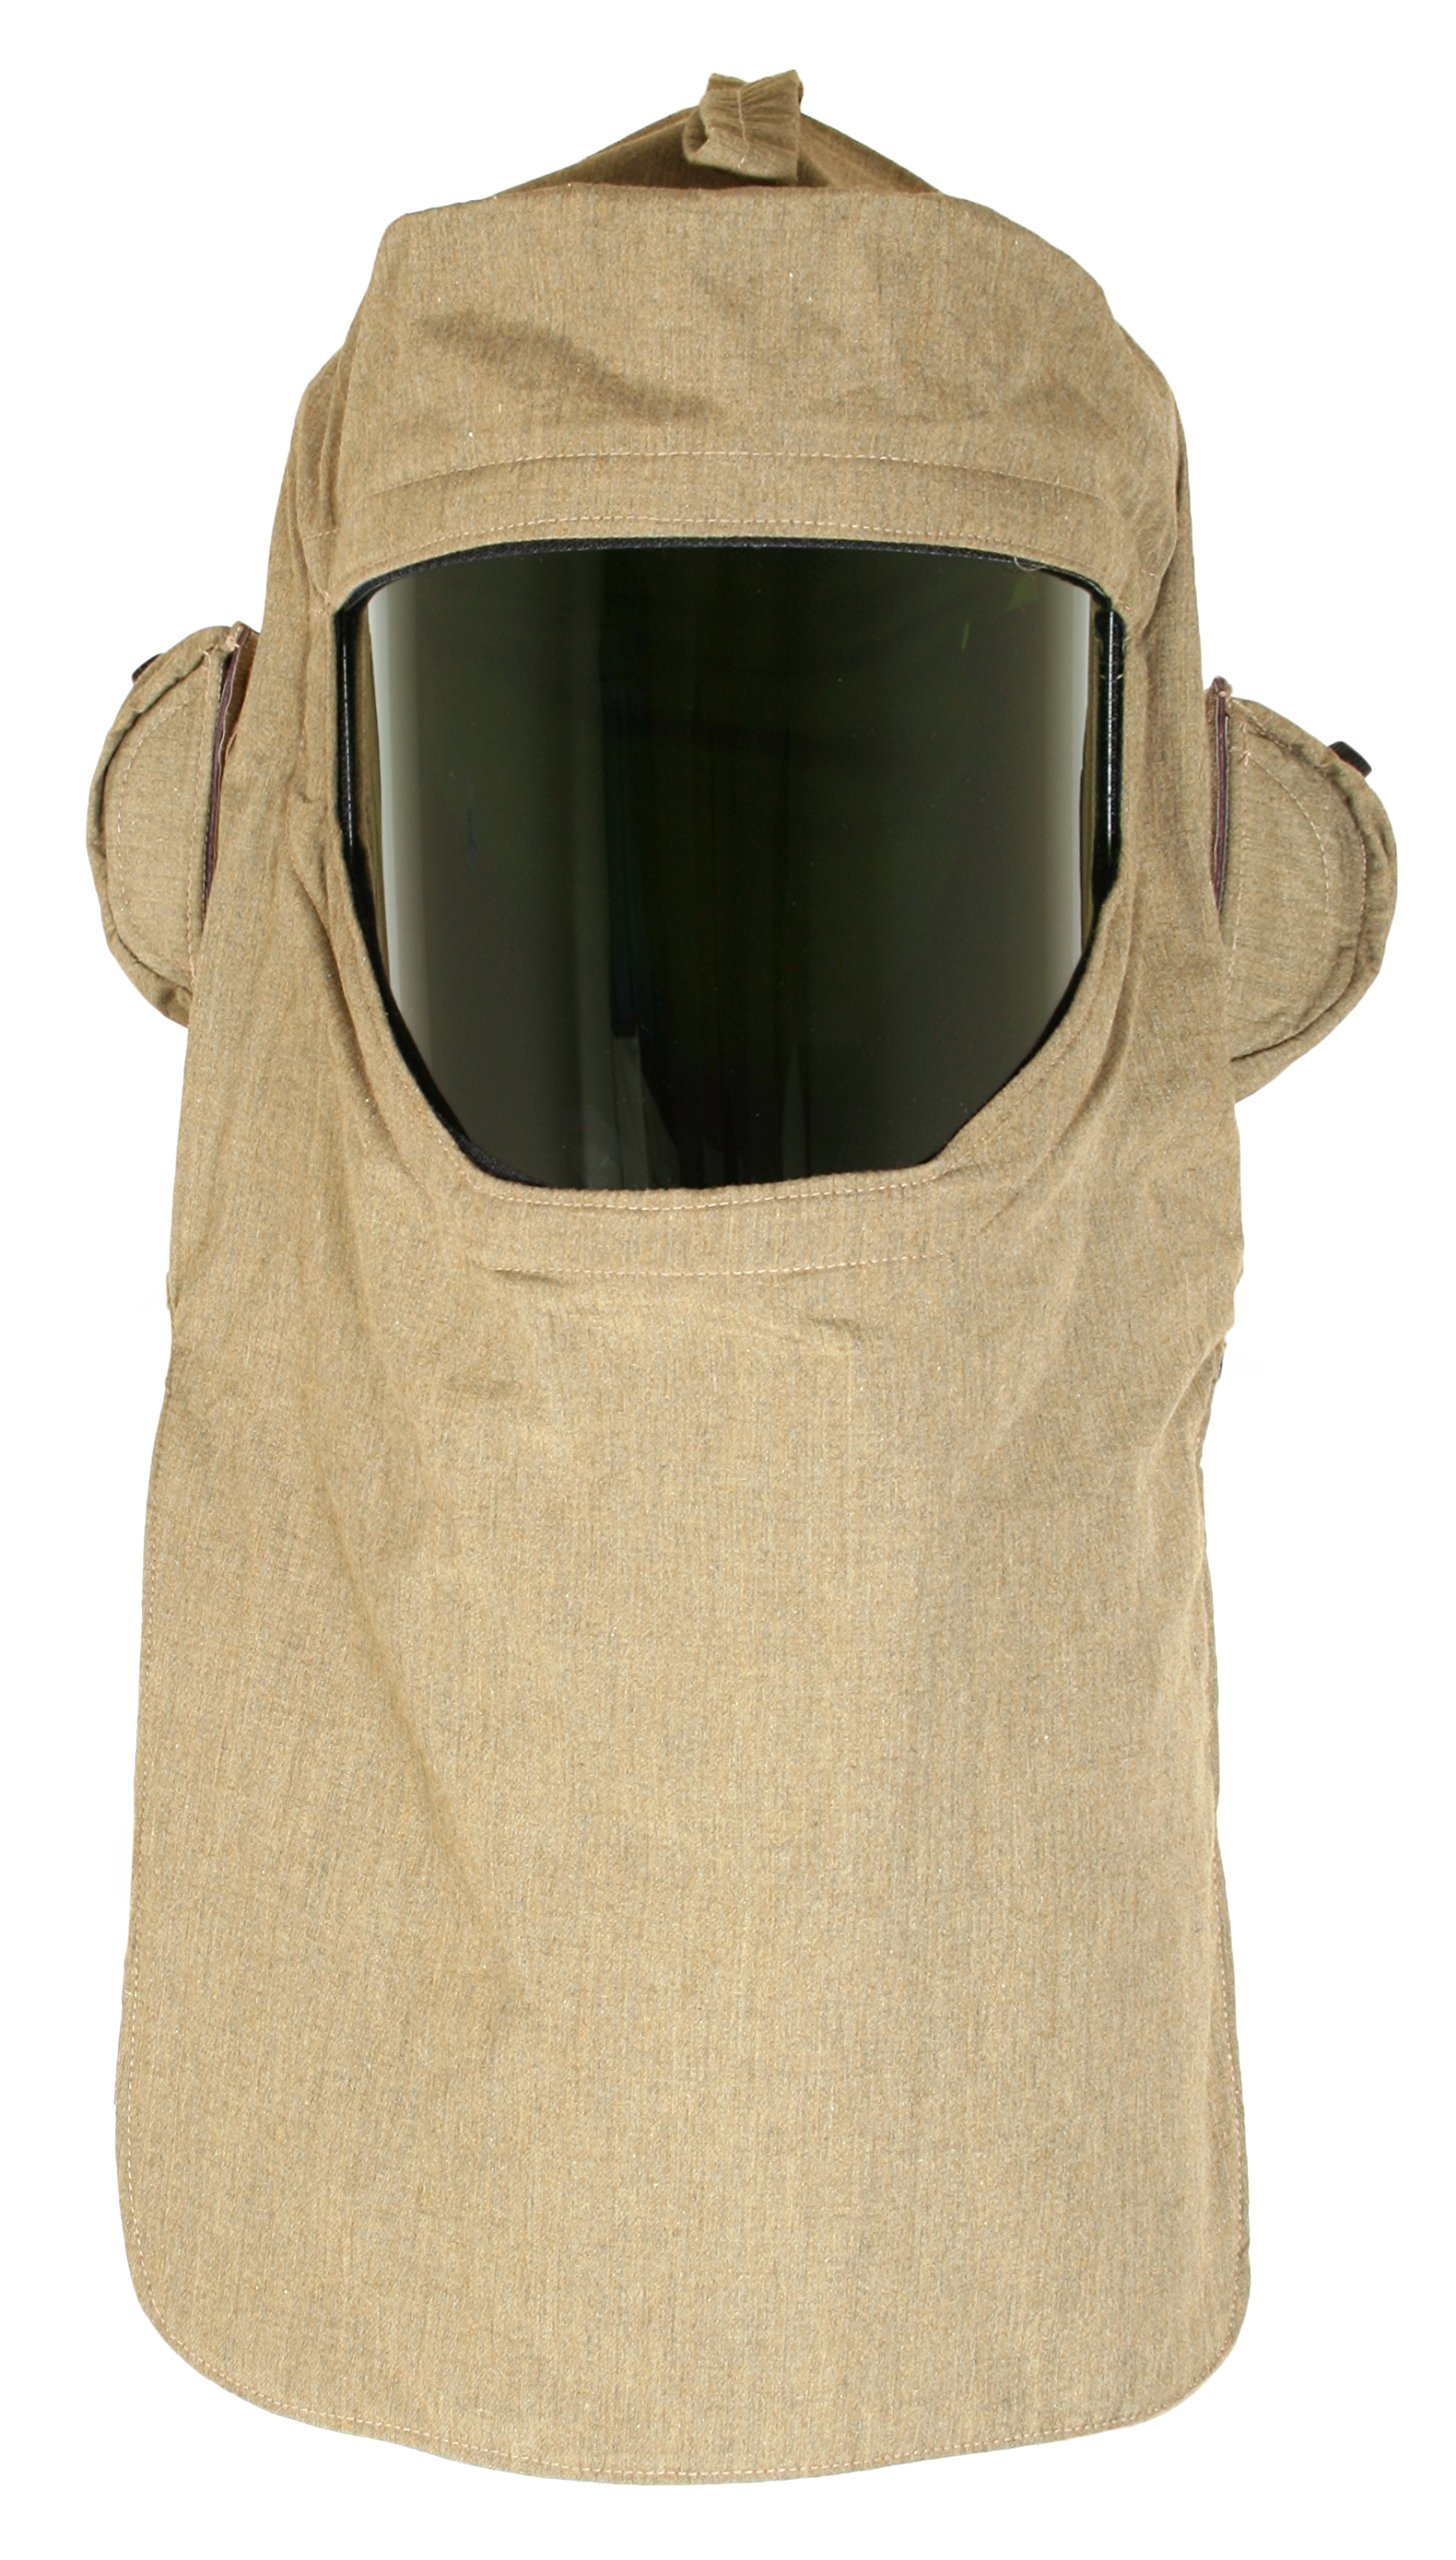 National Safety Apparel H65NPQHFANLT ArcGuard RevoLite Arc Flash Hood with Hard Hat and Internal Fans, 40 Calorie, One Size, Olive Green